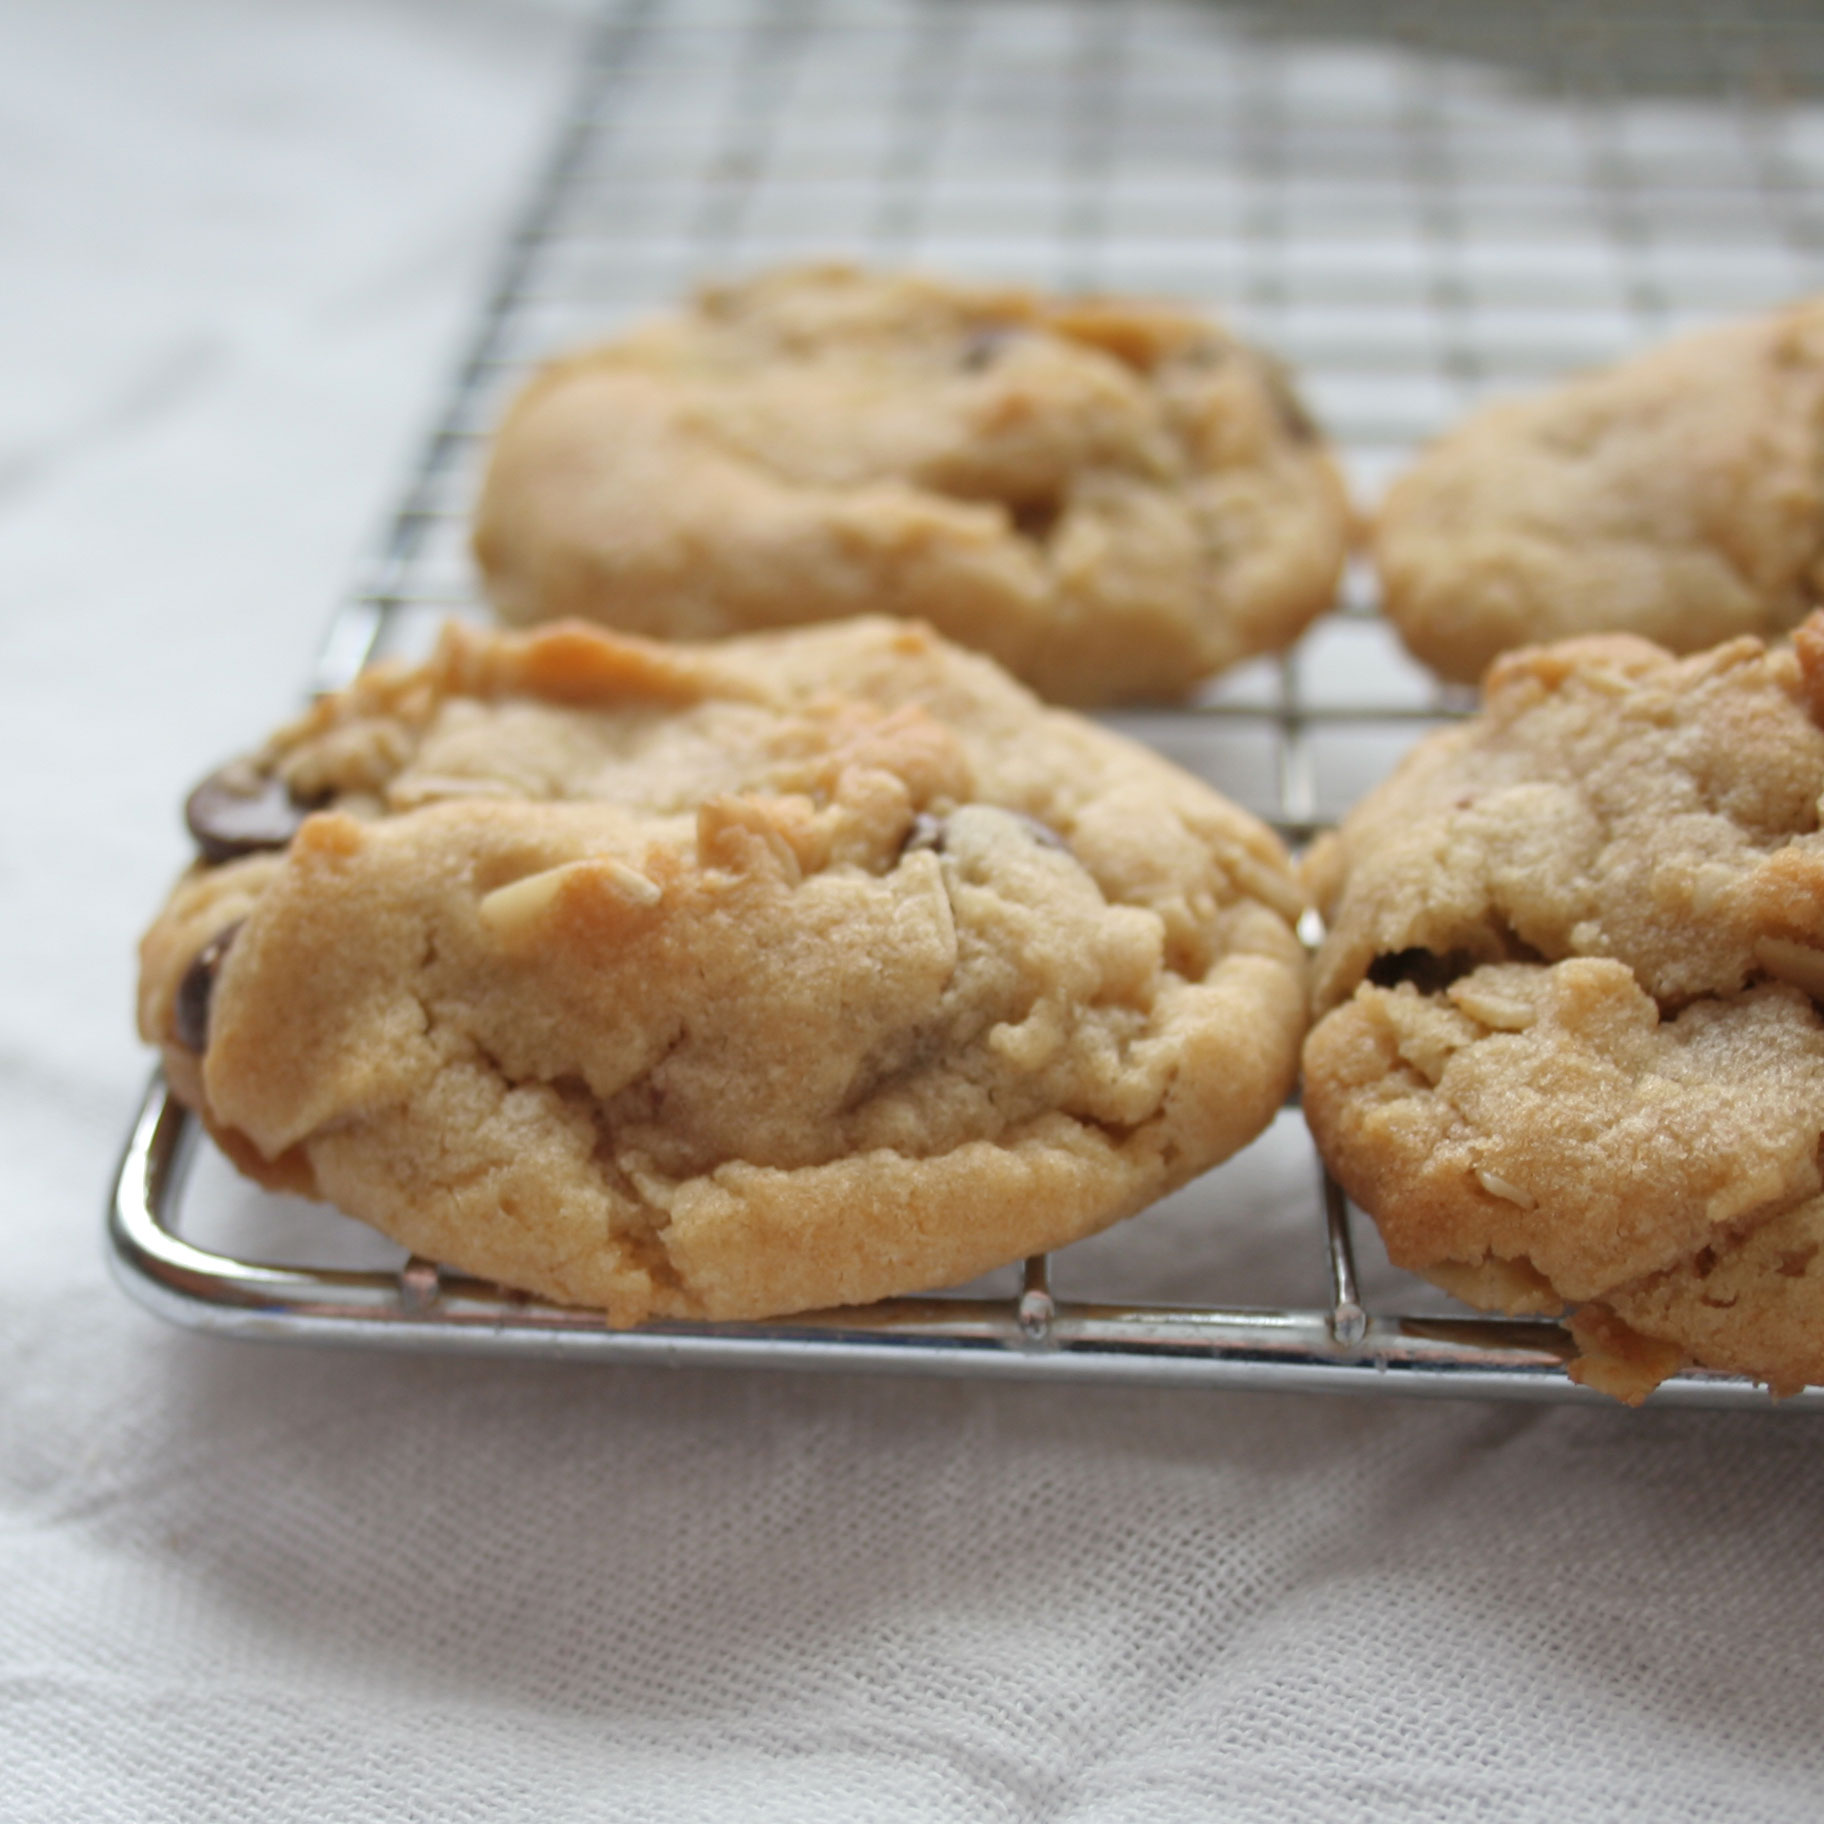 My Downfall – Chocolate Chip Cookies